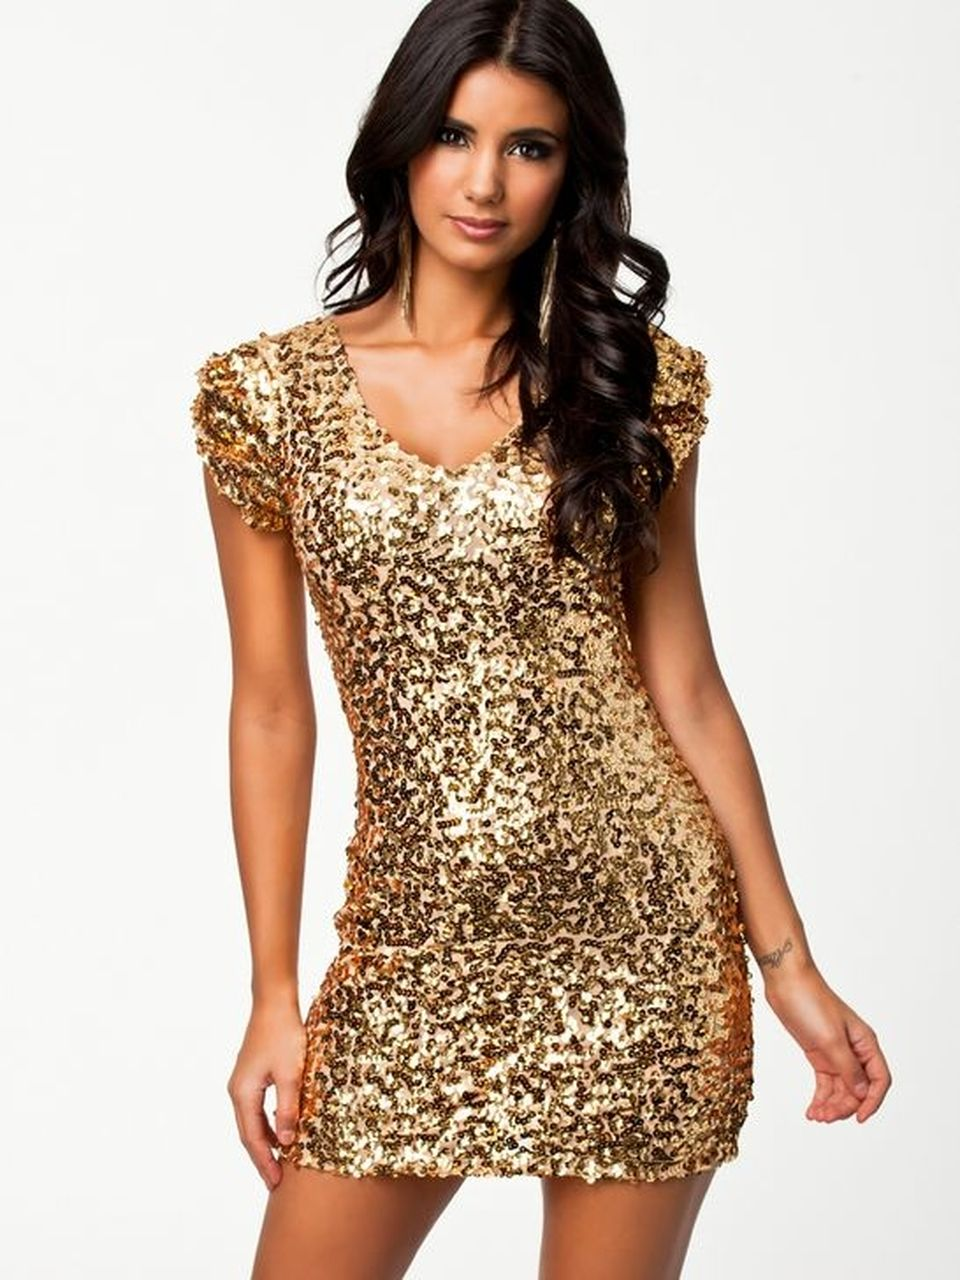 Sequin dress for new year eve party and night out 77